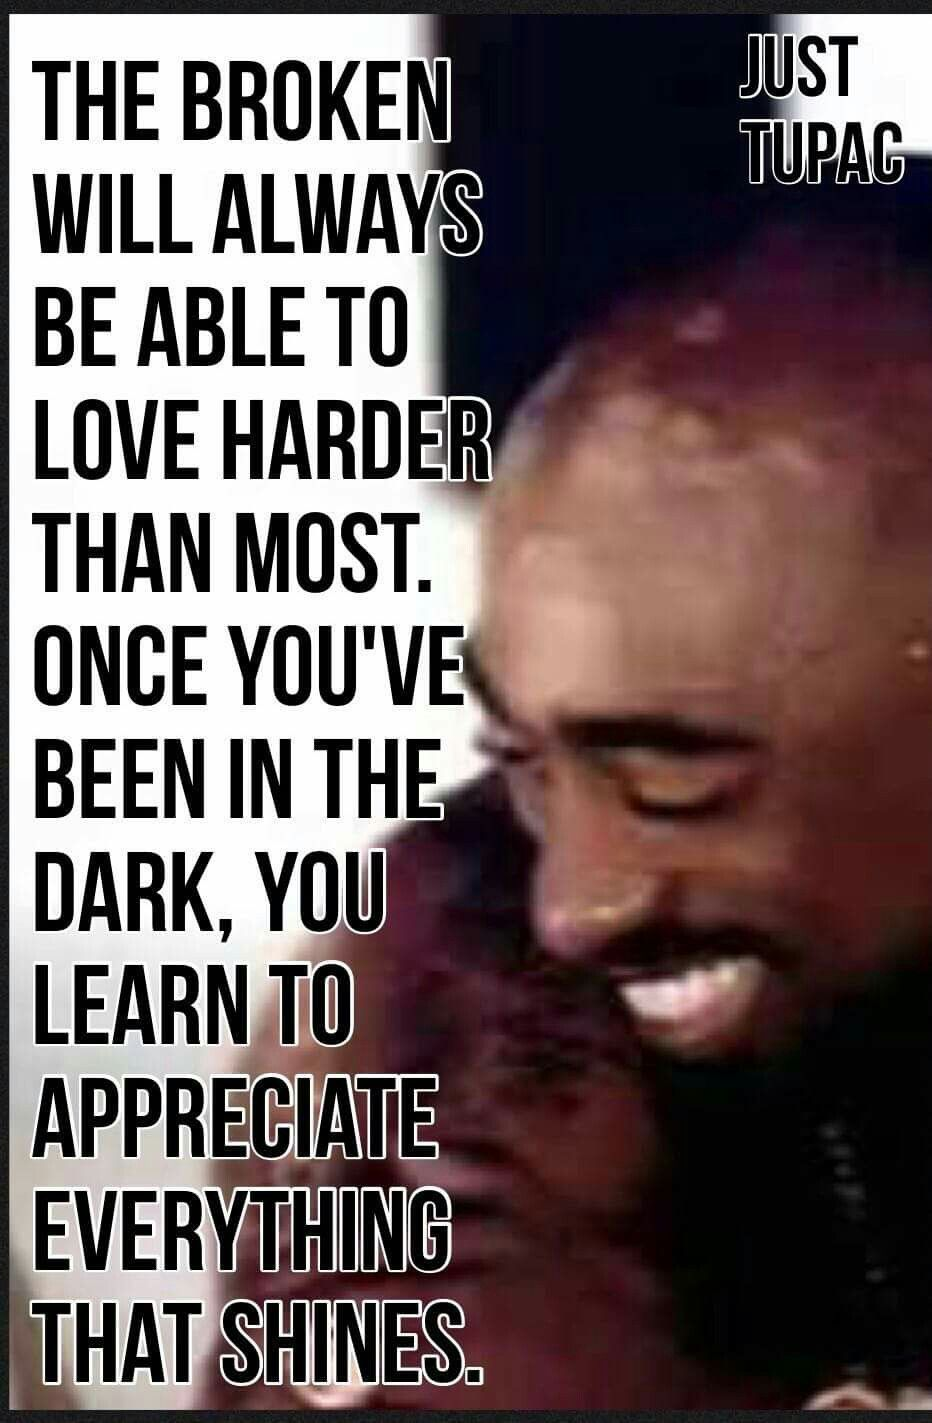 2pac and kadafi relationship quotes